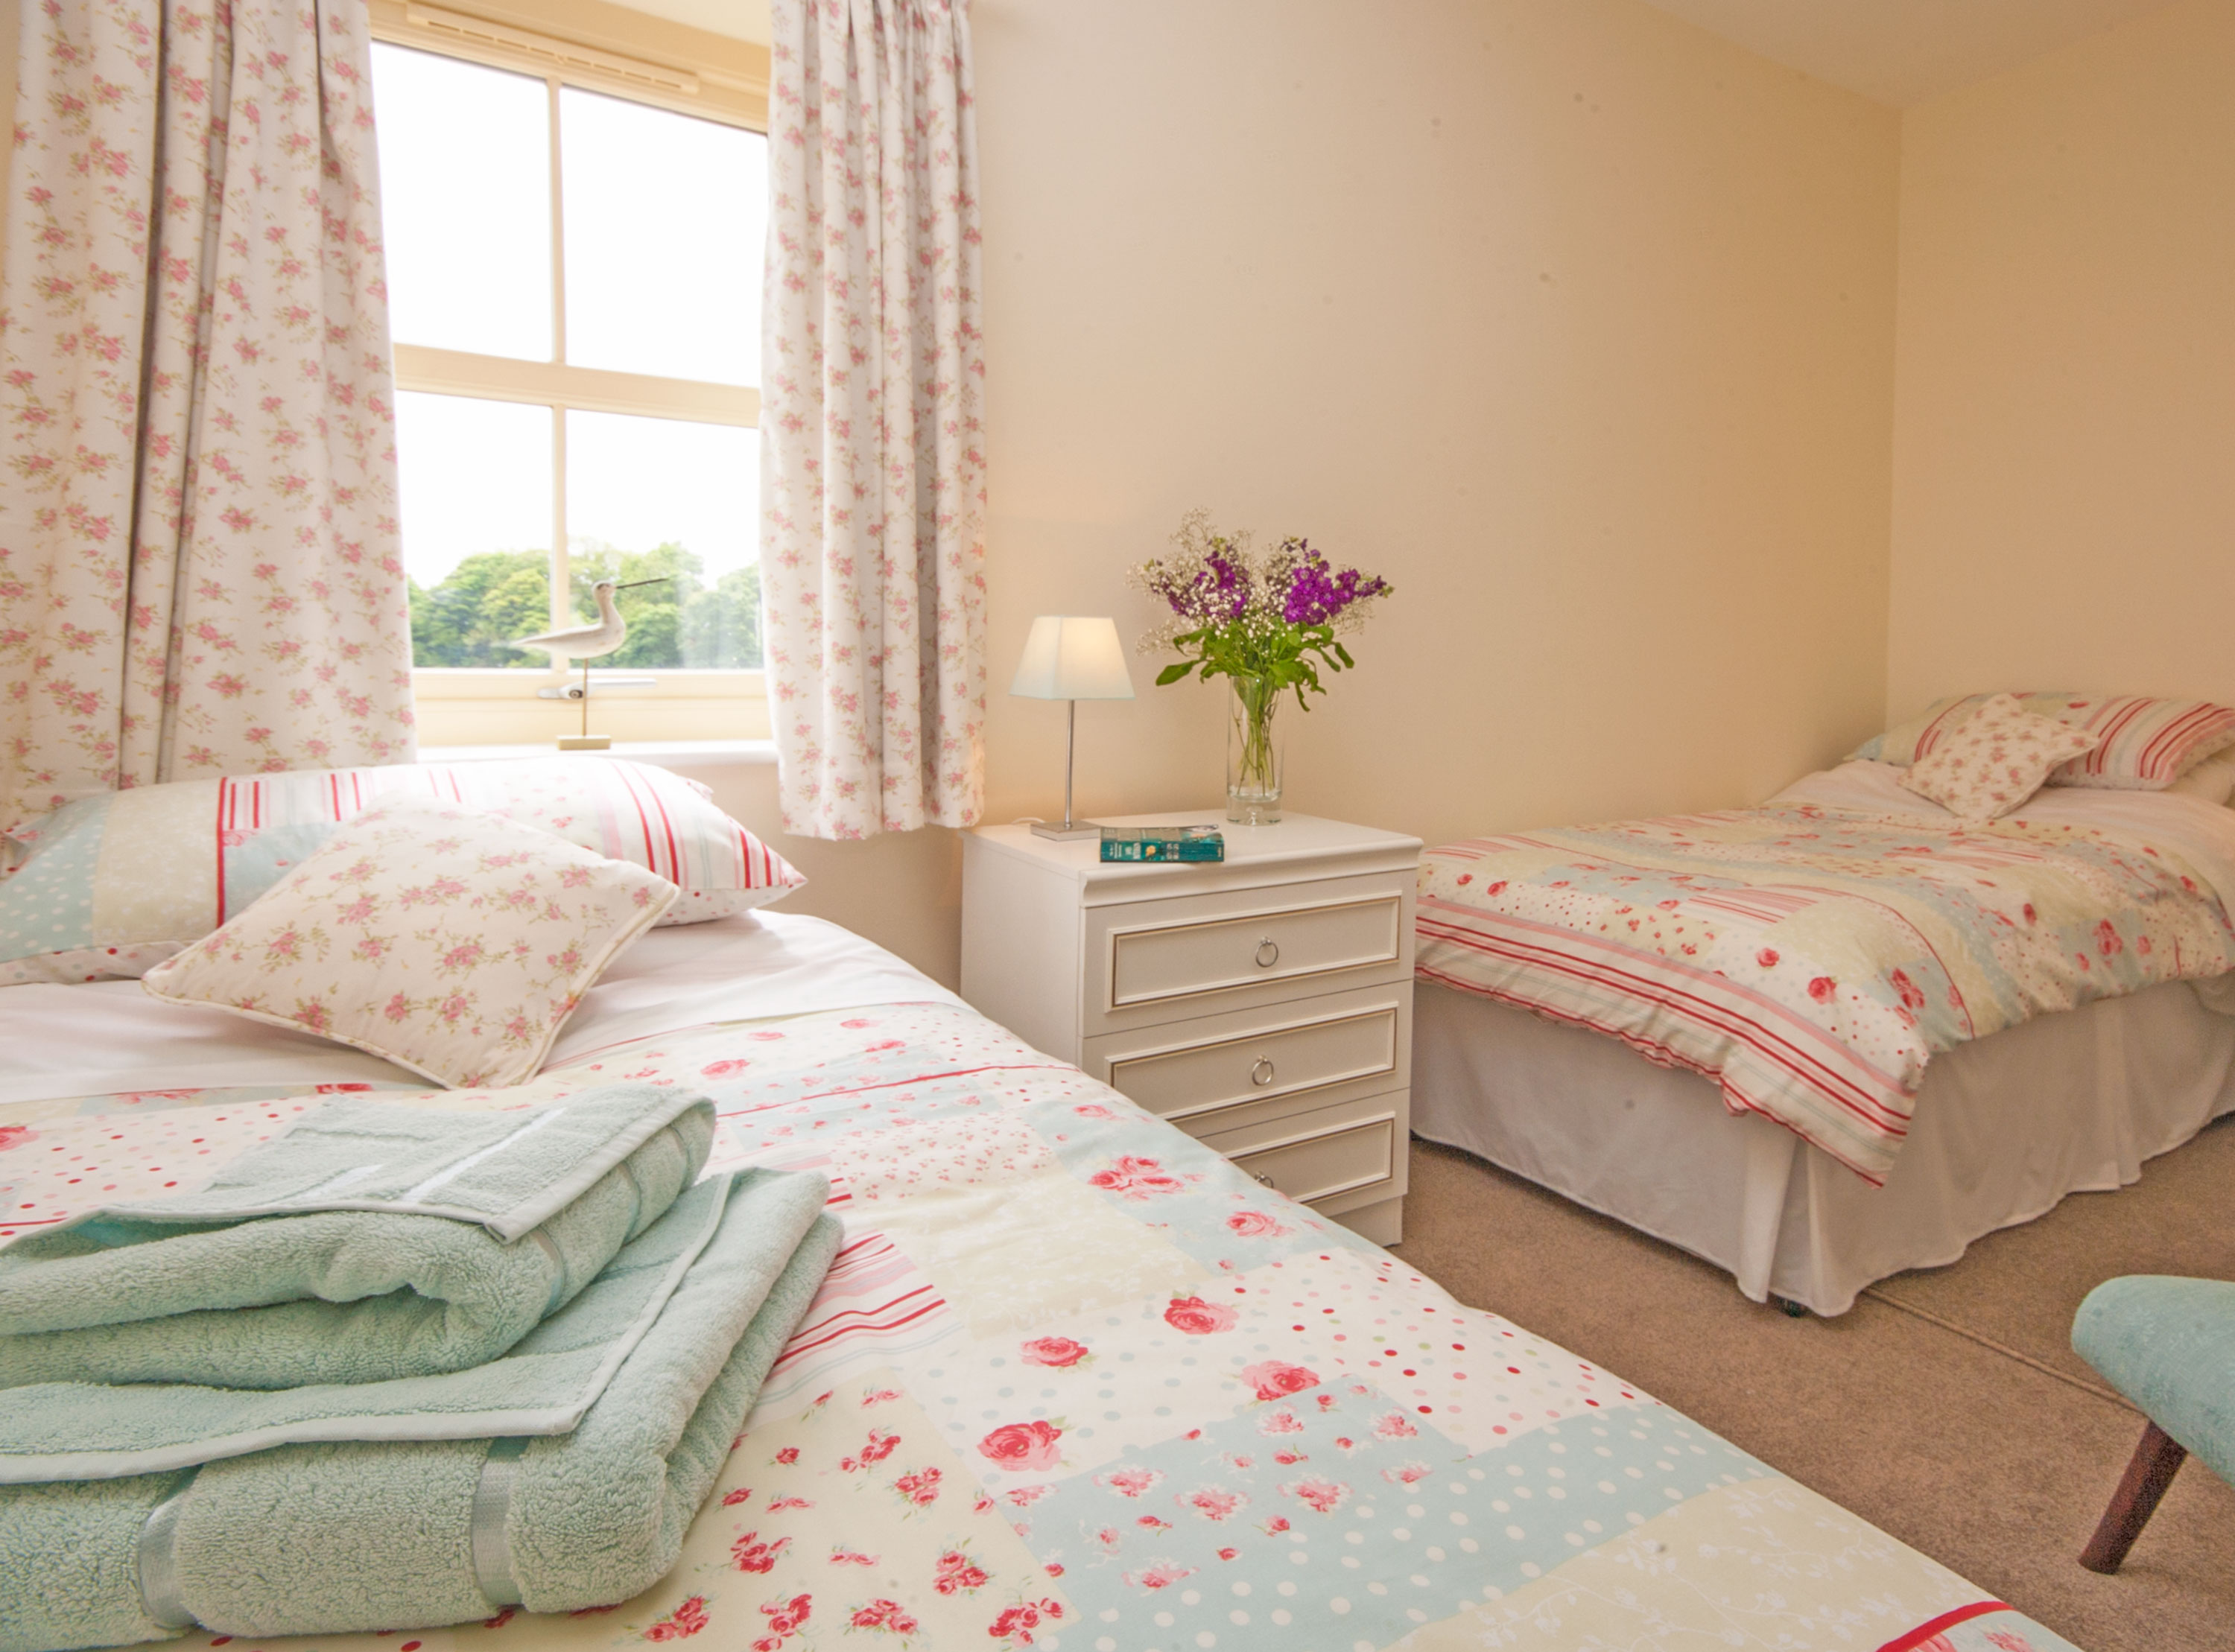 luxury holiday cottages in Warkworth village next to the beach